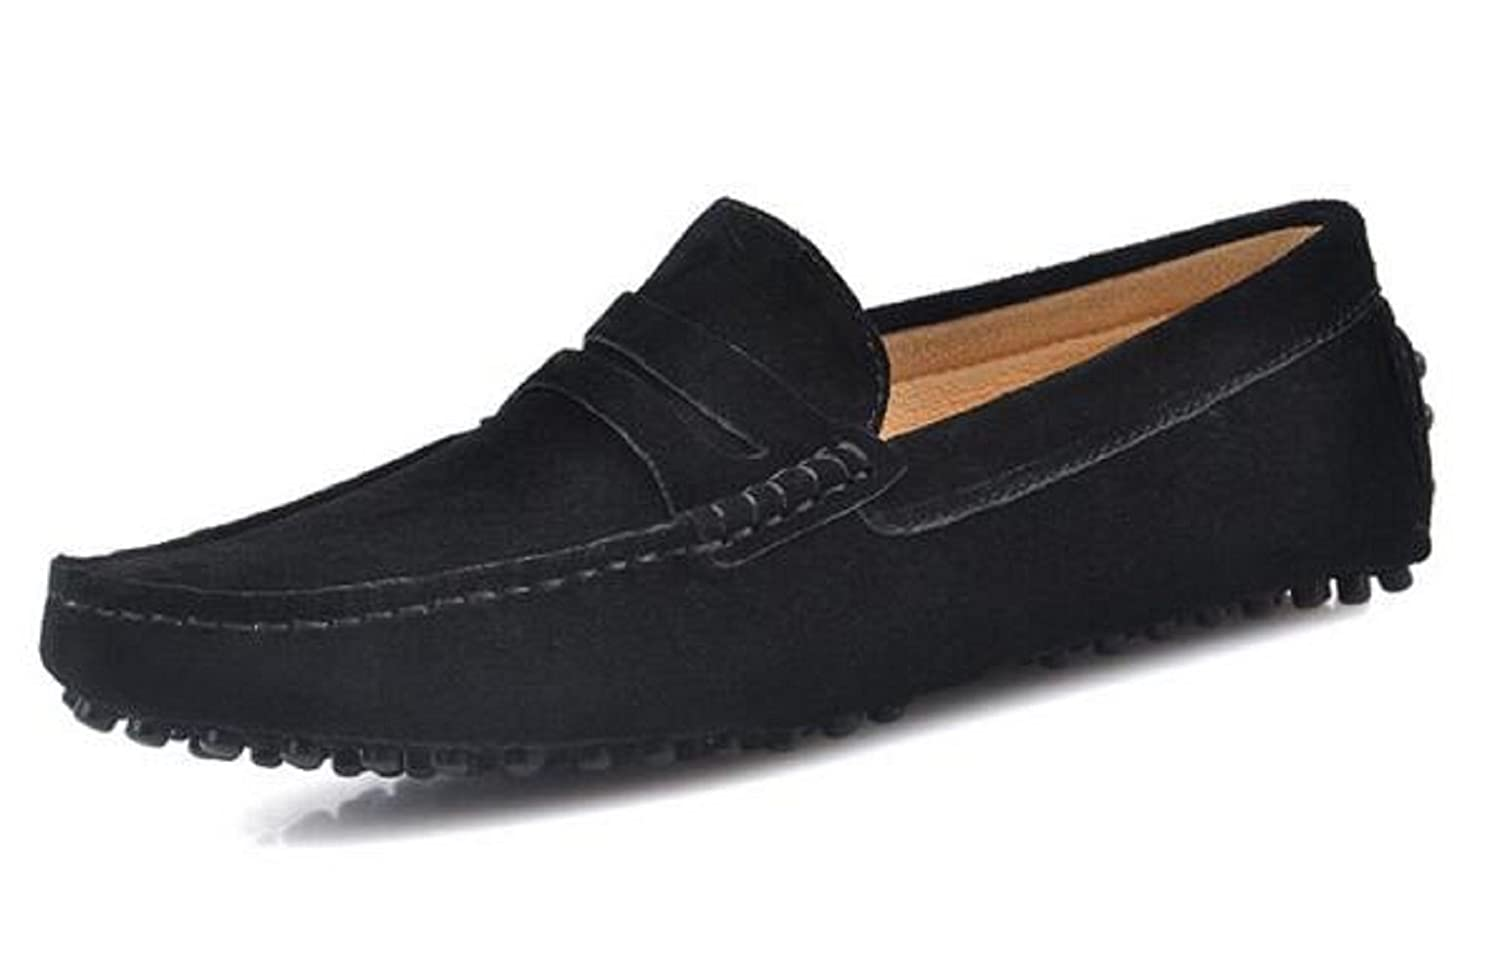 d37c3f91a0a1 HAPPYSHOP TM Men's Suede Leather Moccasin Slippers Driving Shoe Black Dress  Shoes Slip On Loafer Flats